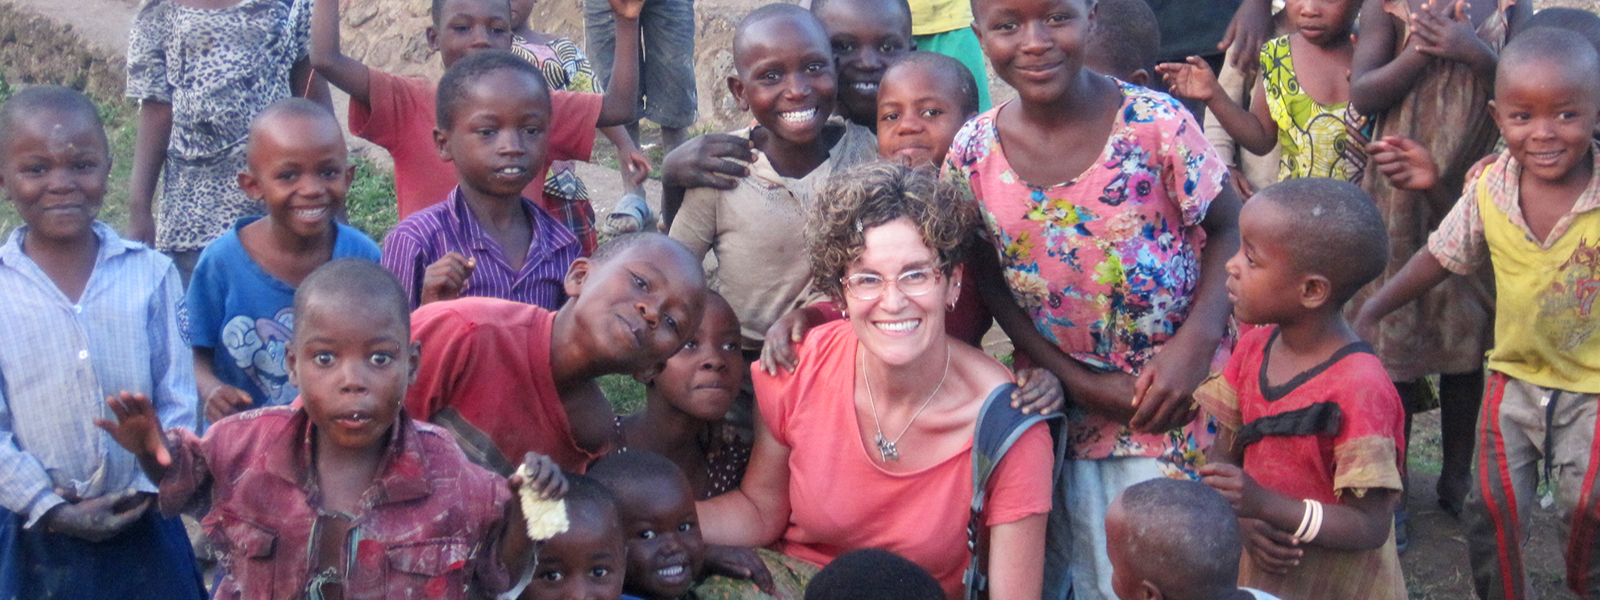 Founder Brooke Sulahian surrounded by local children in Angola